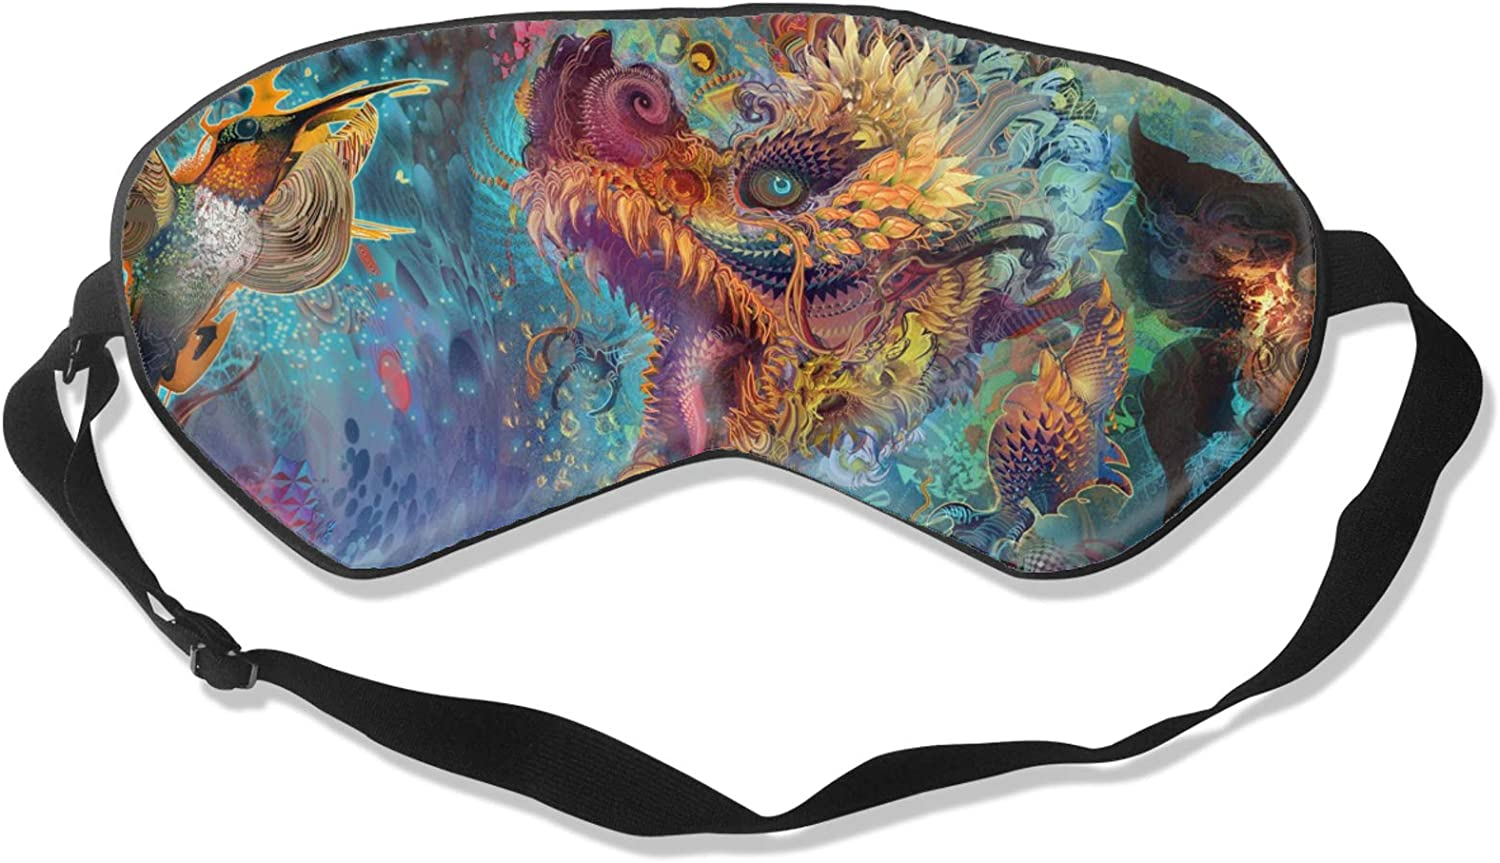 AMRANDOM Unique Eye Cover Blindfold Woman Financial sales sale and Sleeping for Sale SALE% OFF Mask